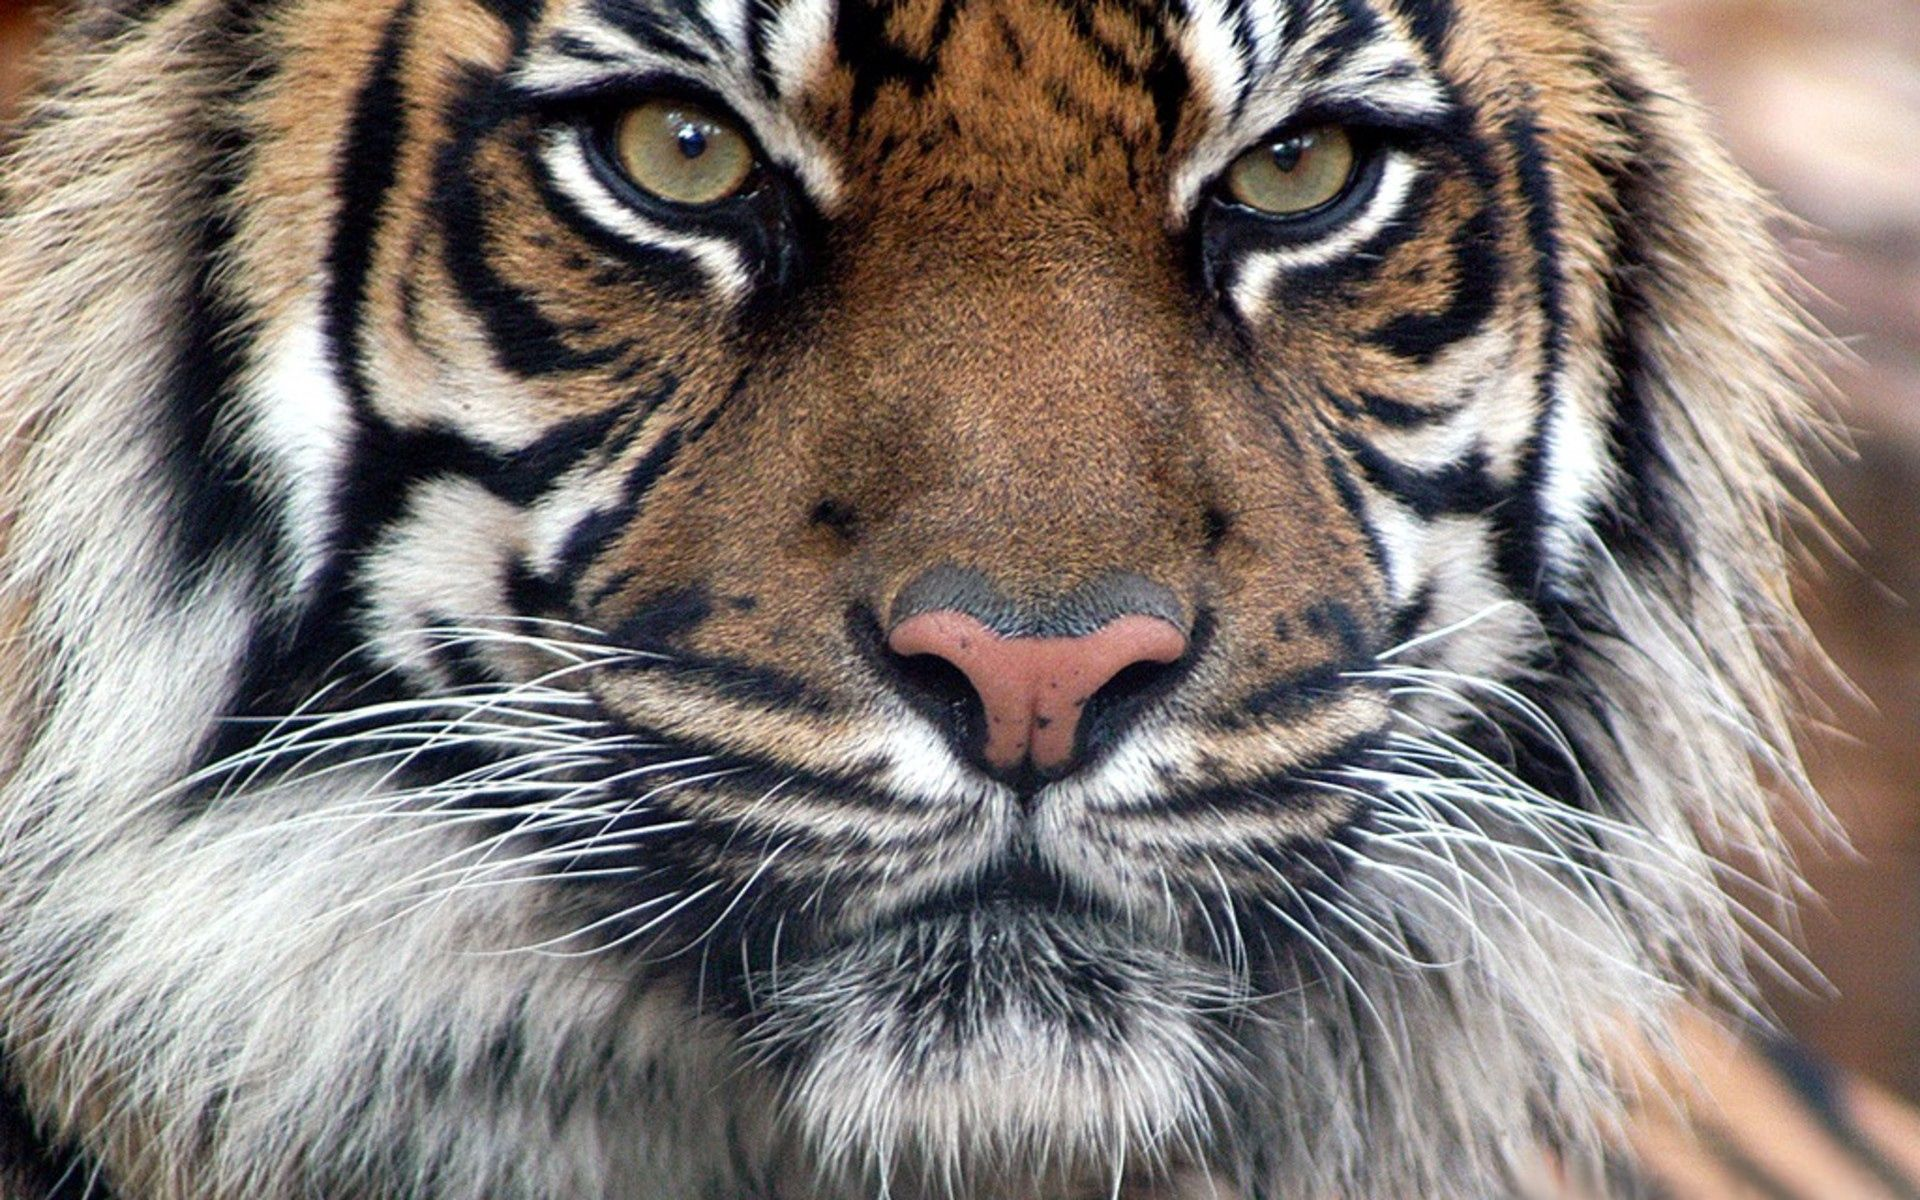 146976 download wallpaper Animals, Tiger, Fur, Muzzle, Eyes, Sight, Opinion, Predatory screensavers and pictures for free